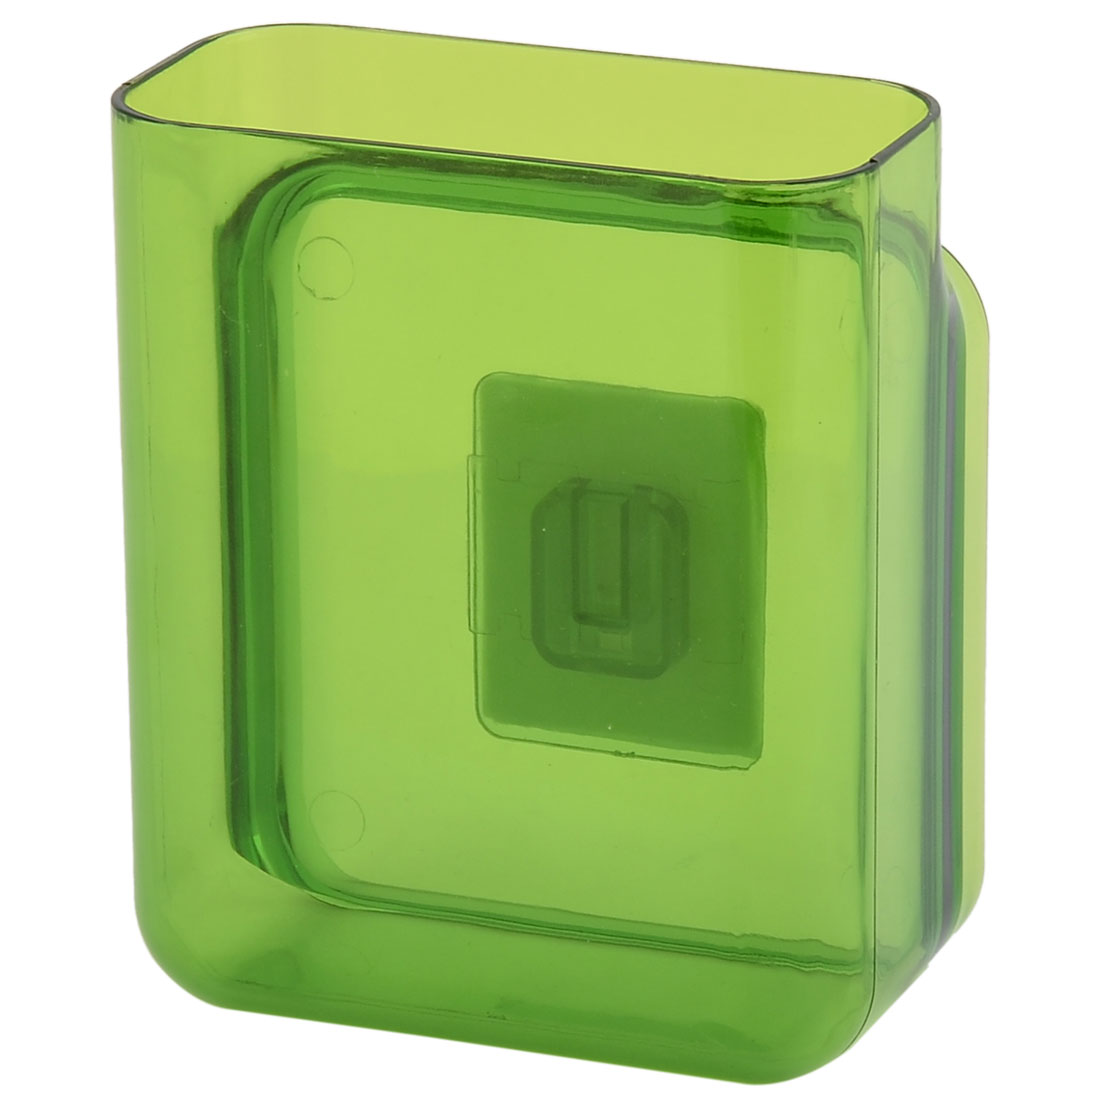 Home Plastic Self-Adhesive Comb Toothbrush Storage Box Case Organizer Green